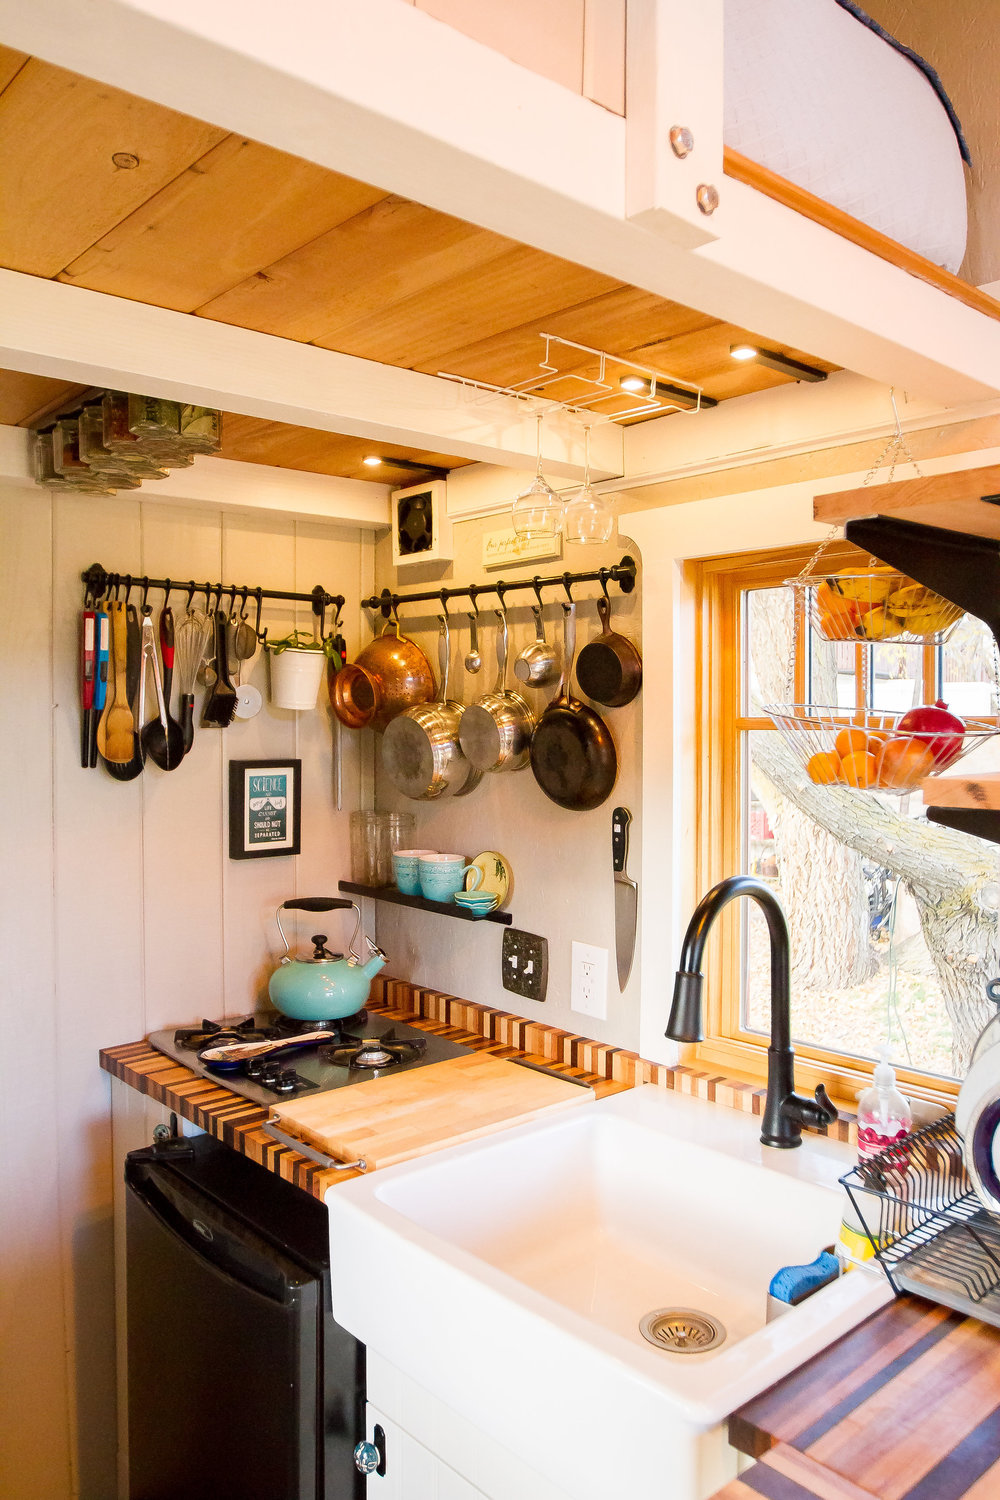 The pot rack and cooking utensils are very convenient!